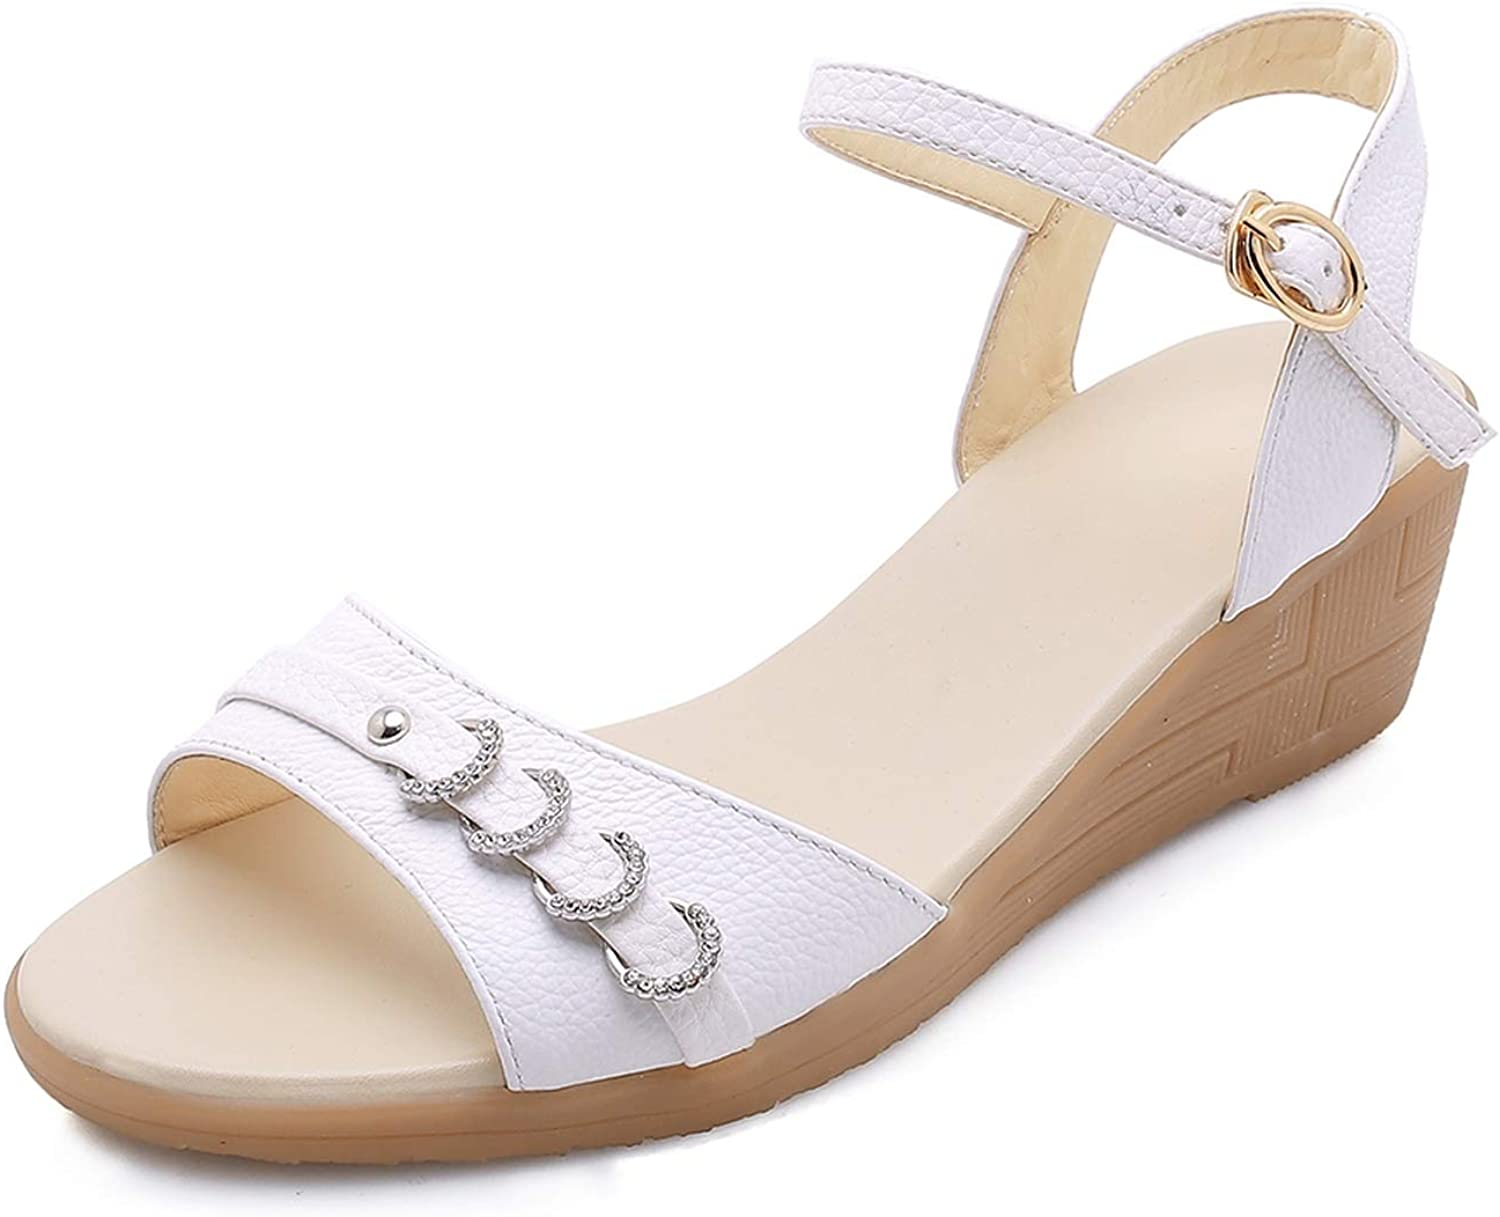 Women Sandals Cow Leather Wedge Middle Heel Metal Decoration Buckle,